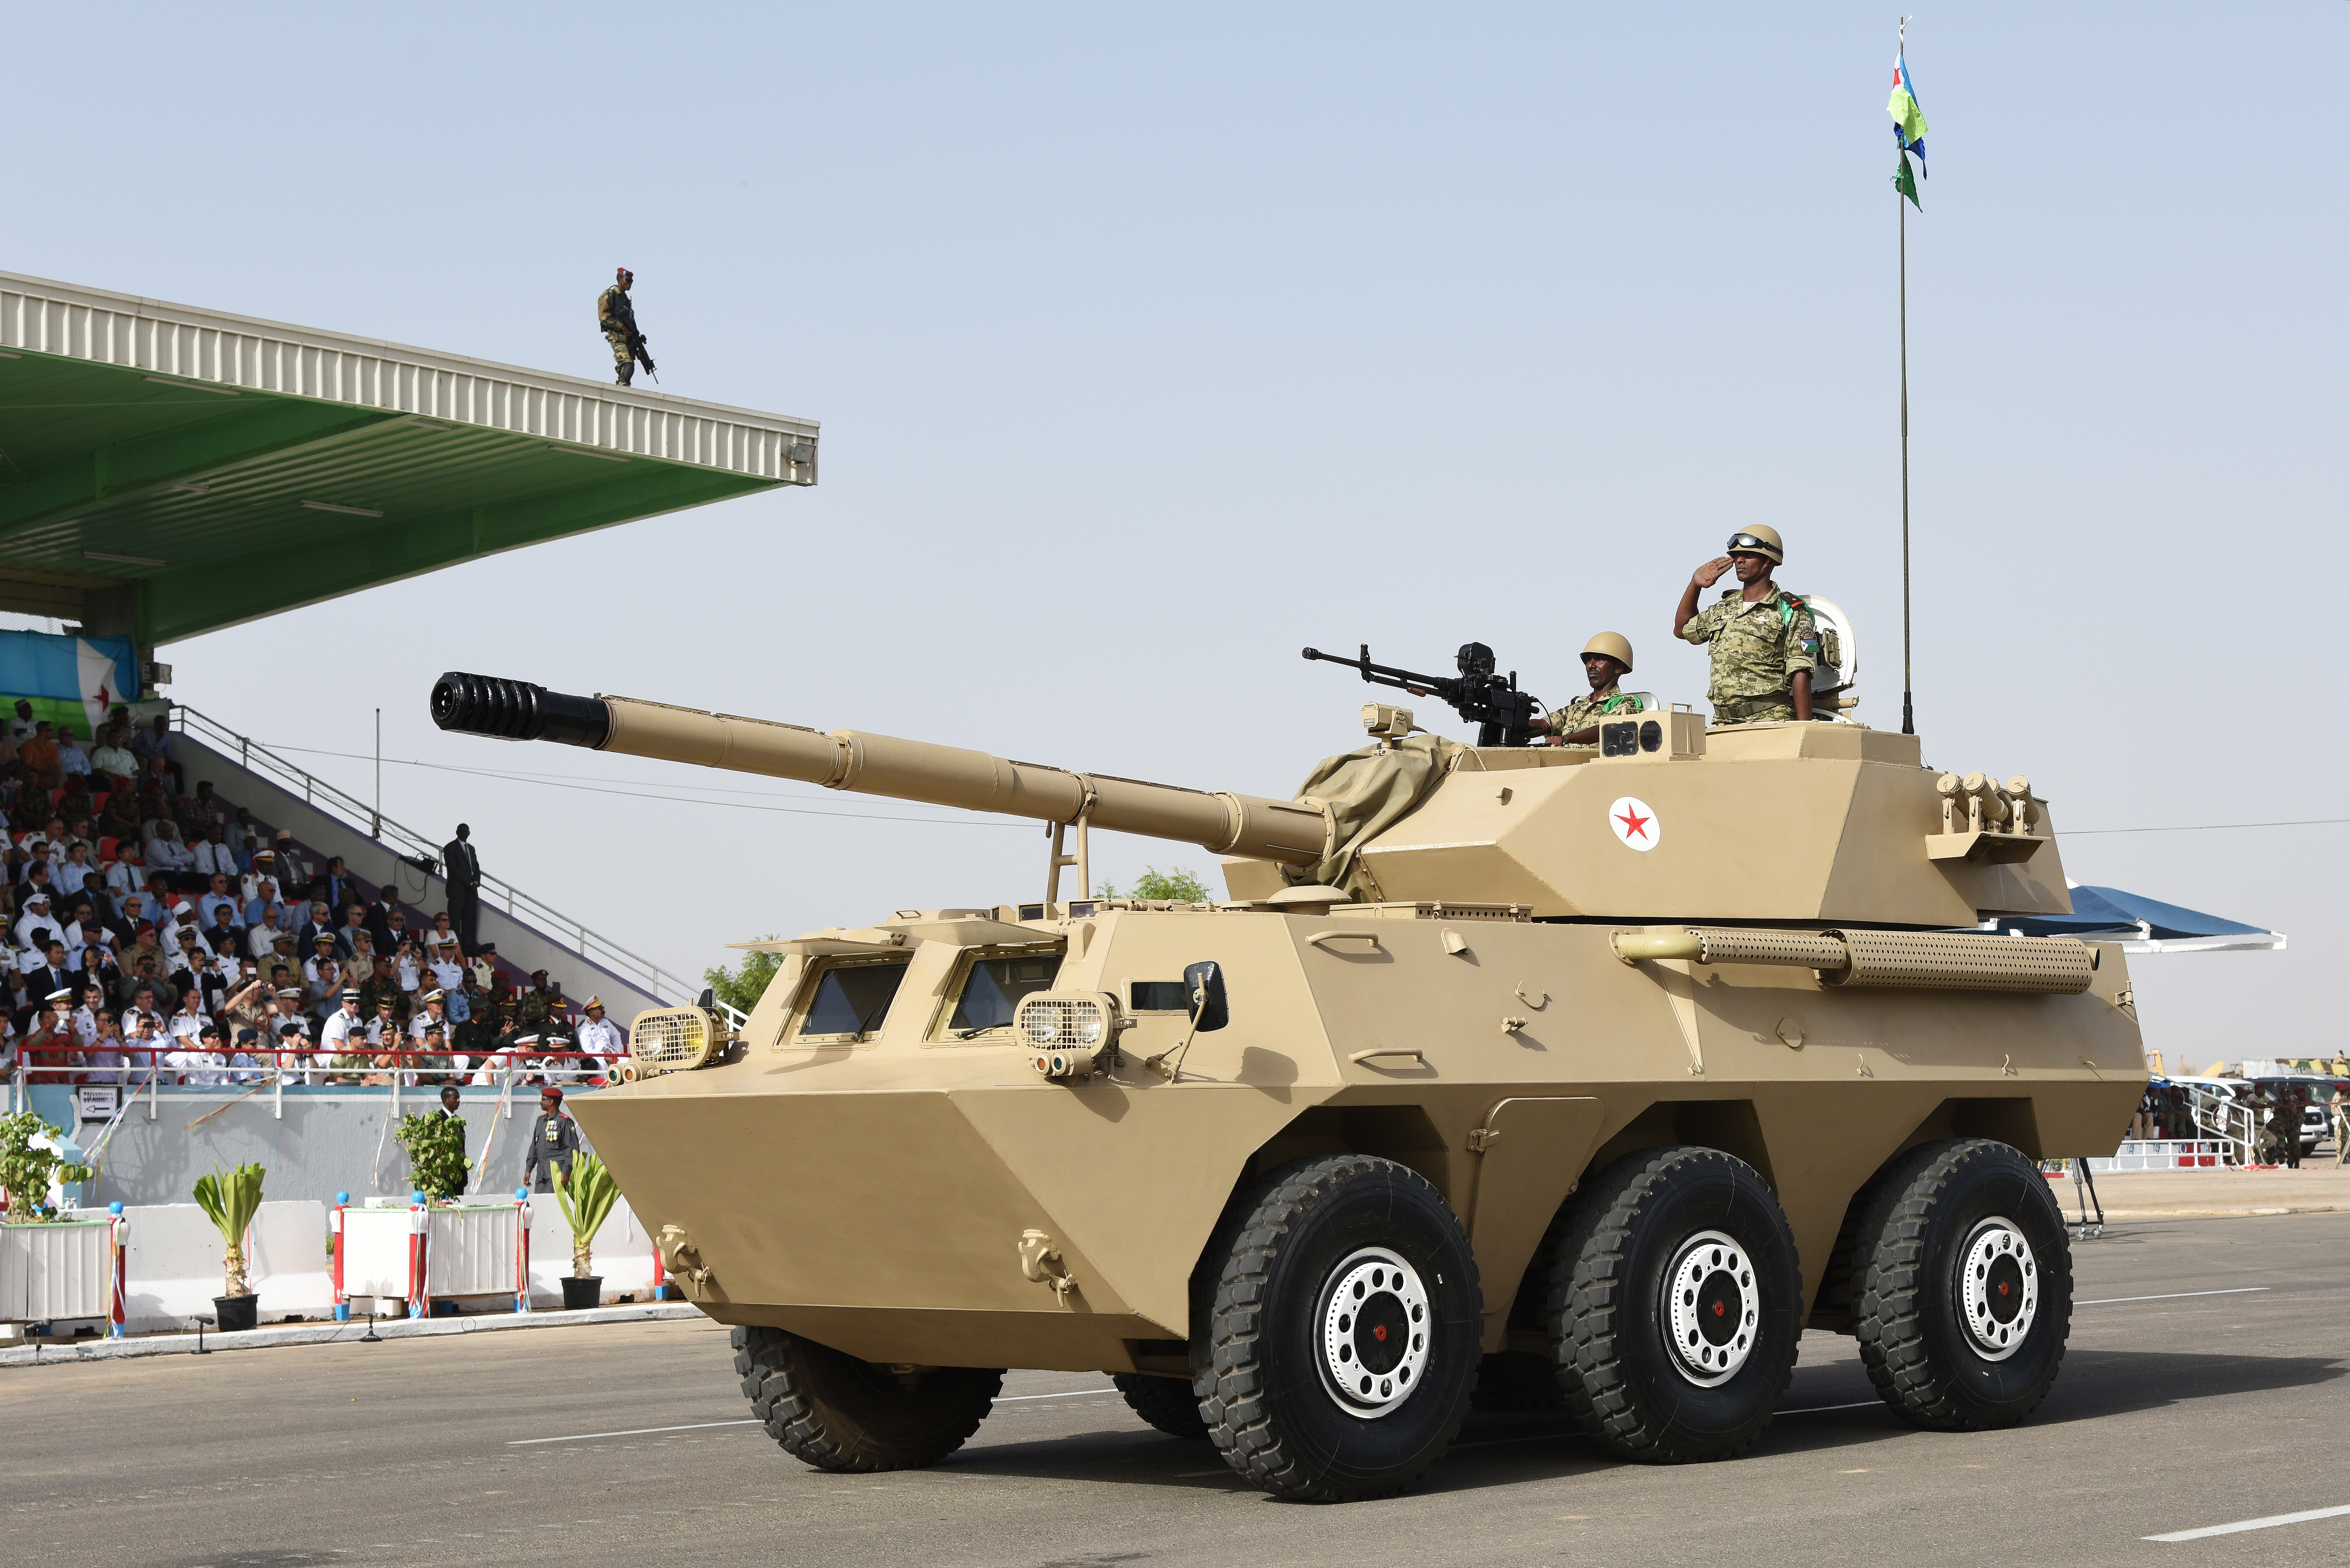 Djibouti's service members drive a military vehicle during a Djibouti Independence Day celebration June 27, 2015.  The military parade included a marching band and troops showcasing its different military equipment.  (U.S. Air Force photo by Staff Sgt. Maria Bowman) (U.S. Air Force photos by Staff Sgt. Maria Bowman)